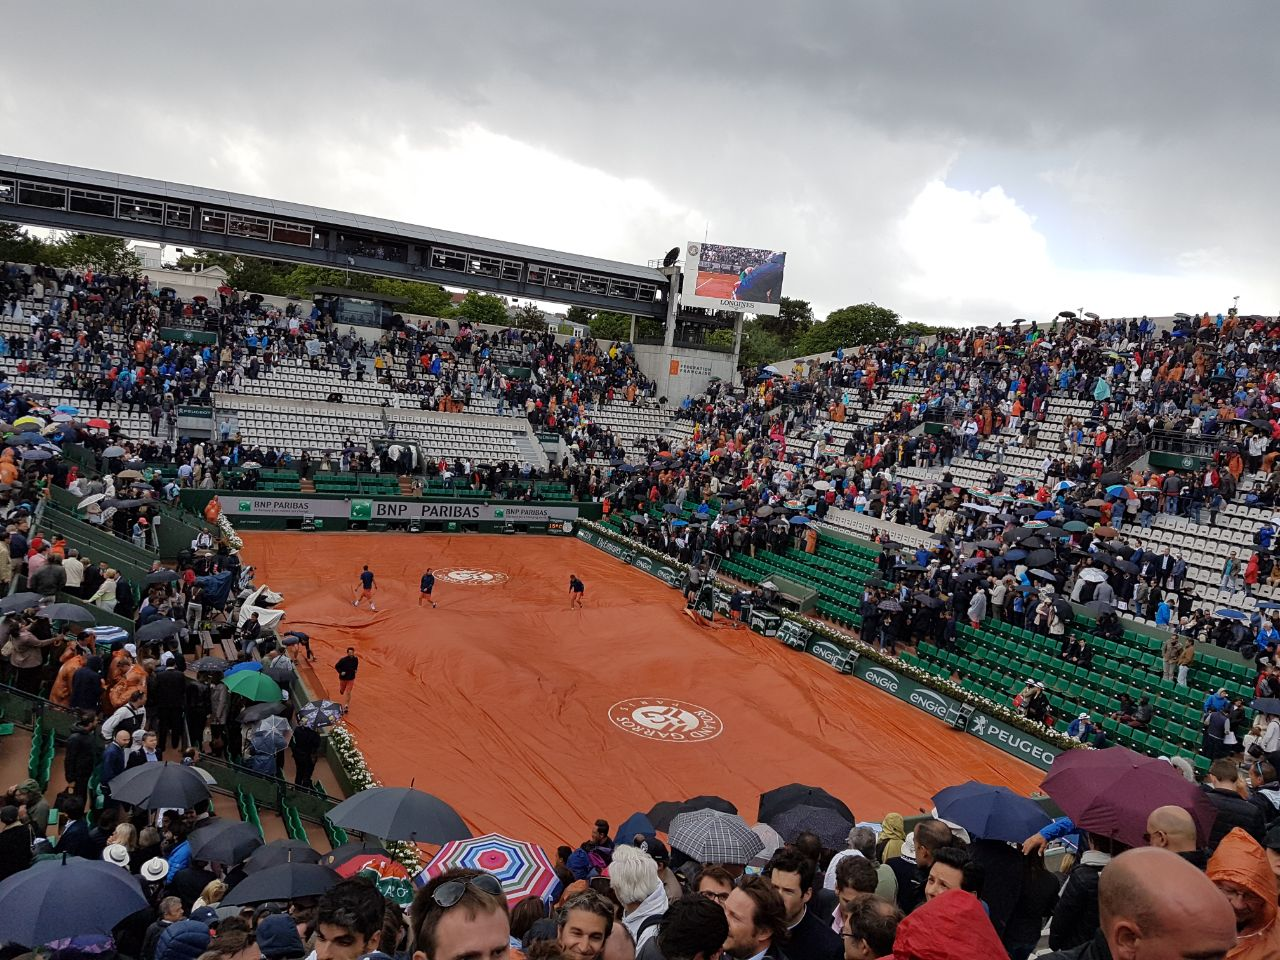 Courts are covered. Play suspended.